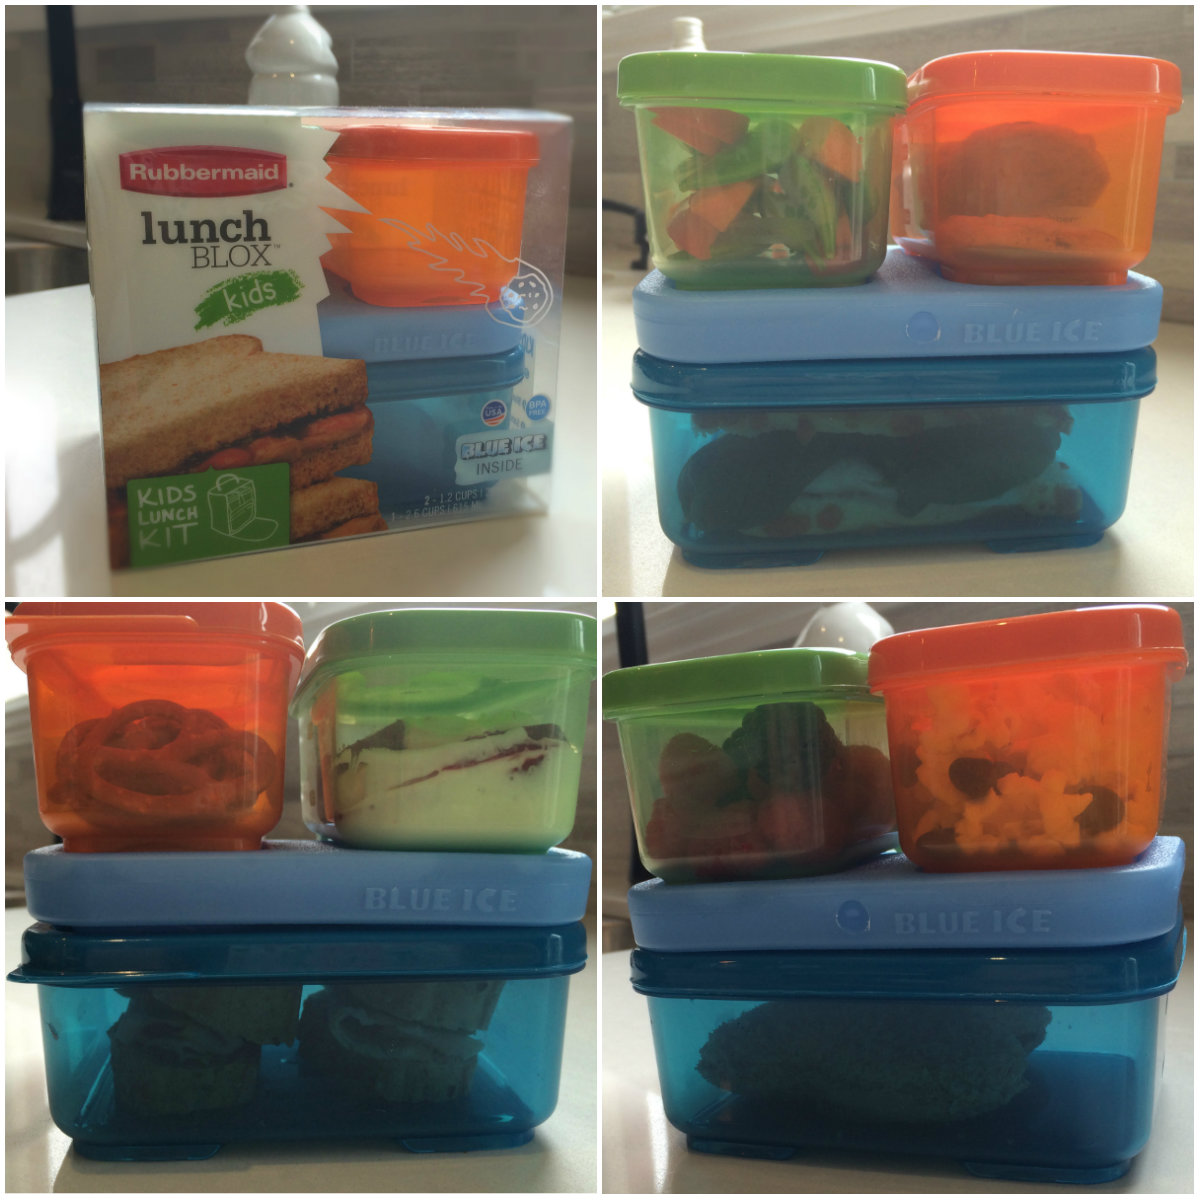 Rubbermaid Lunchblox collage